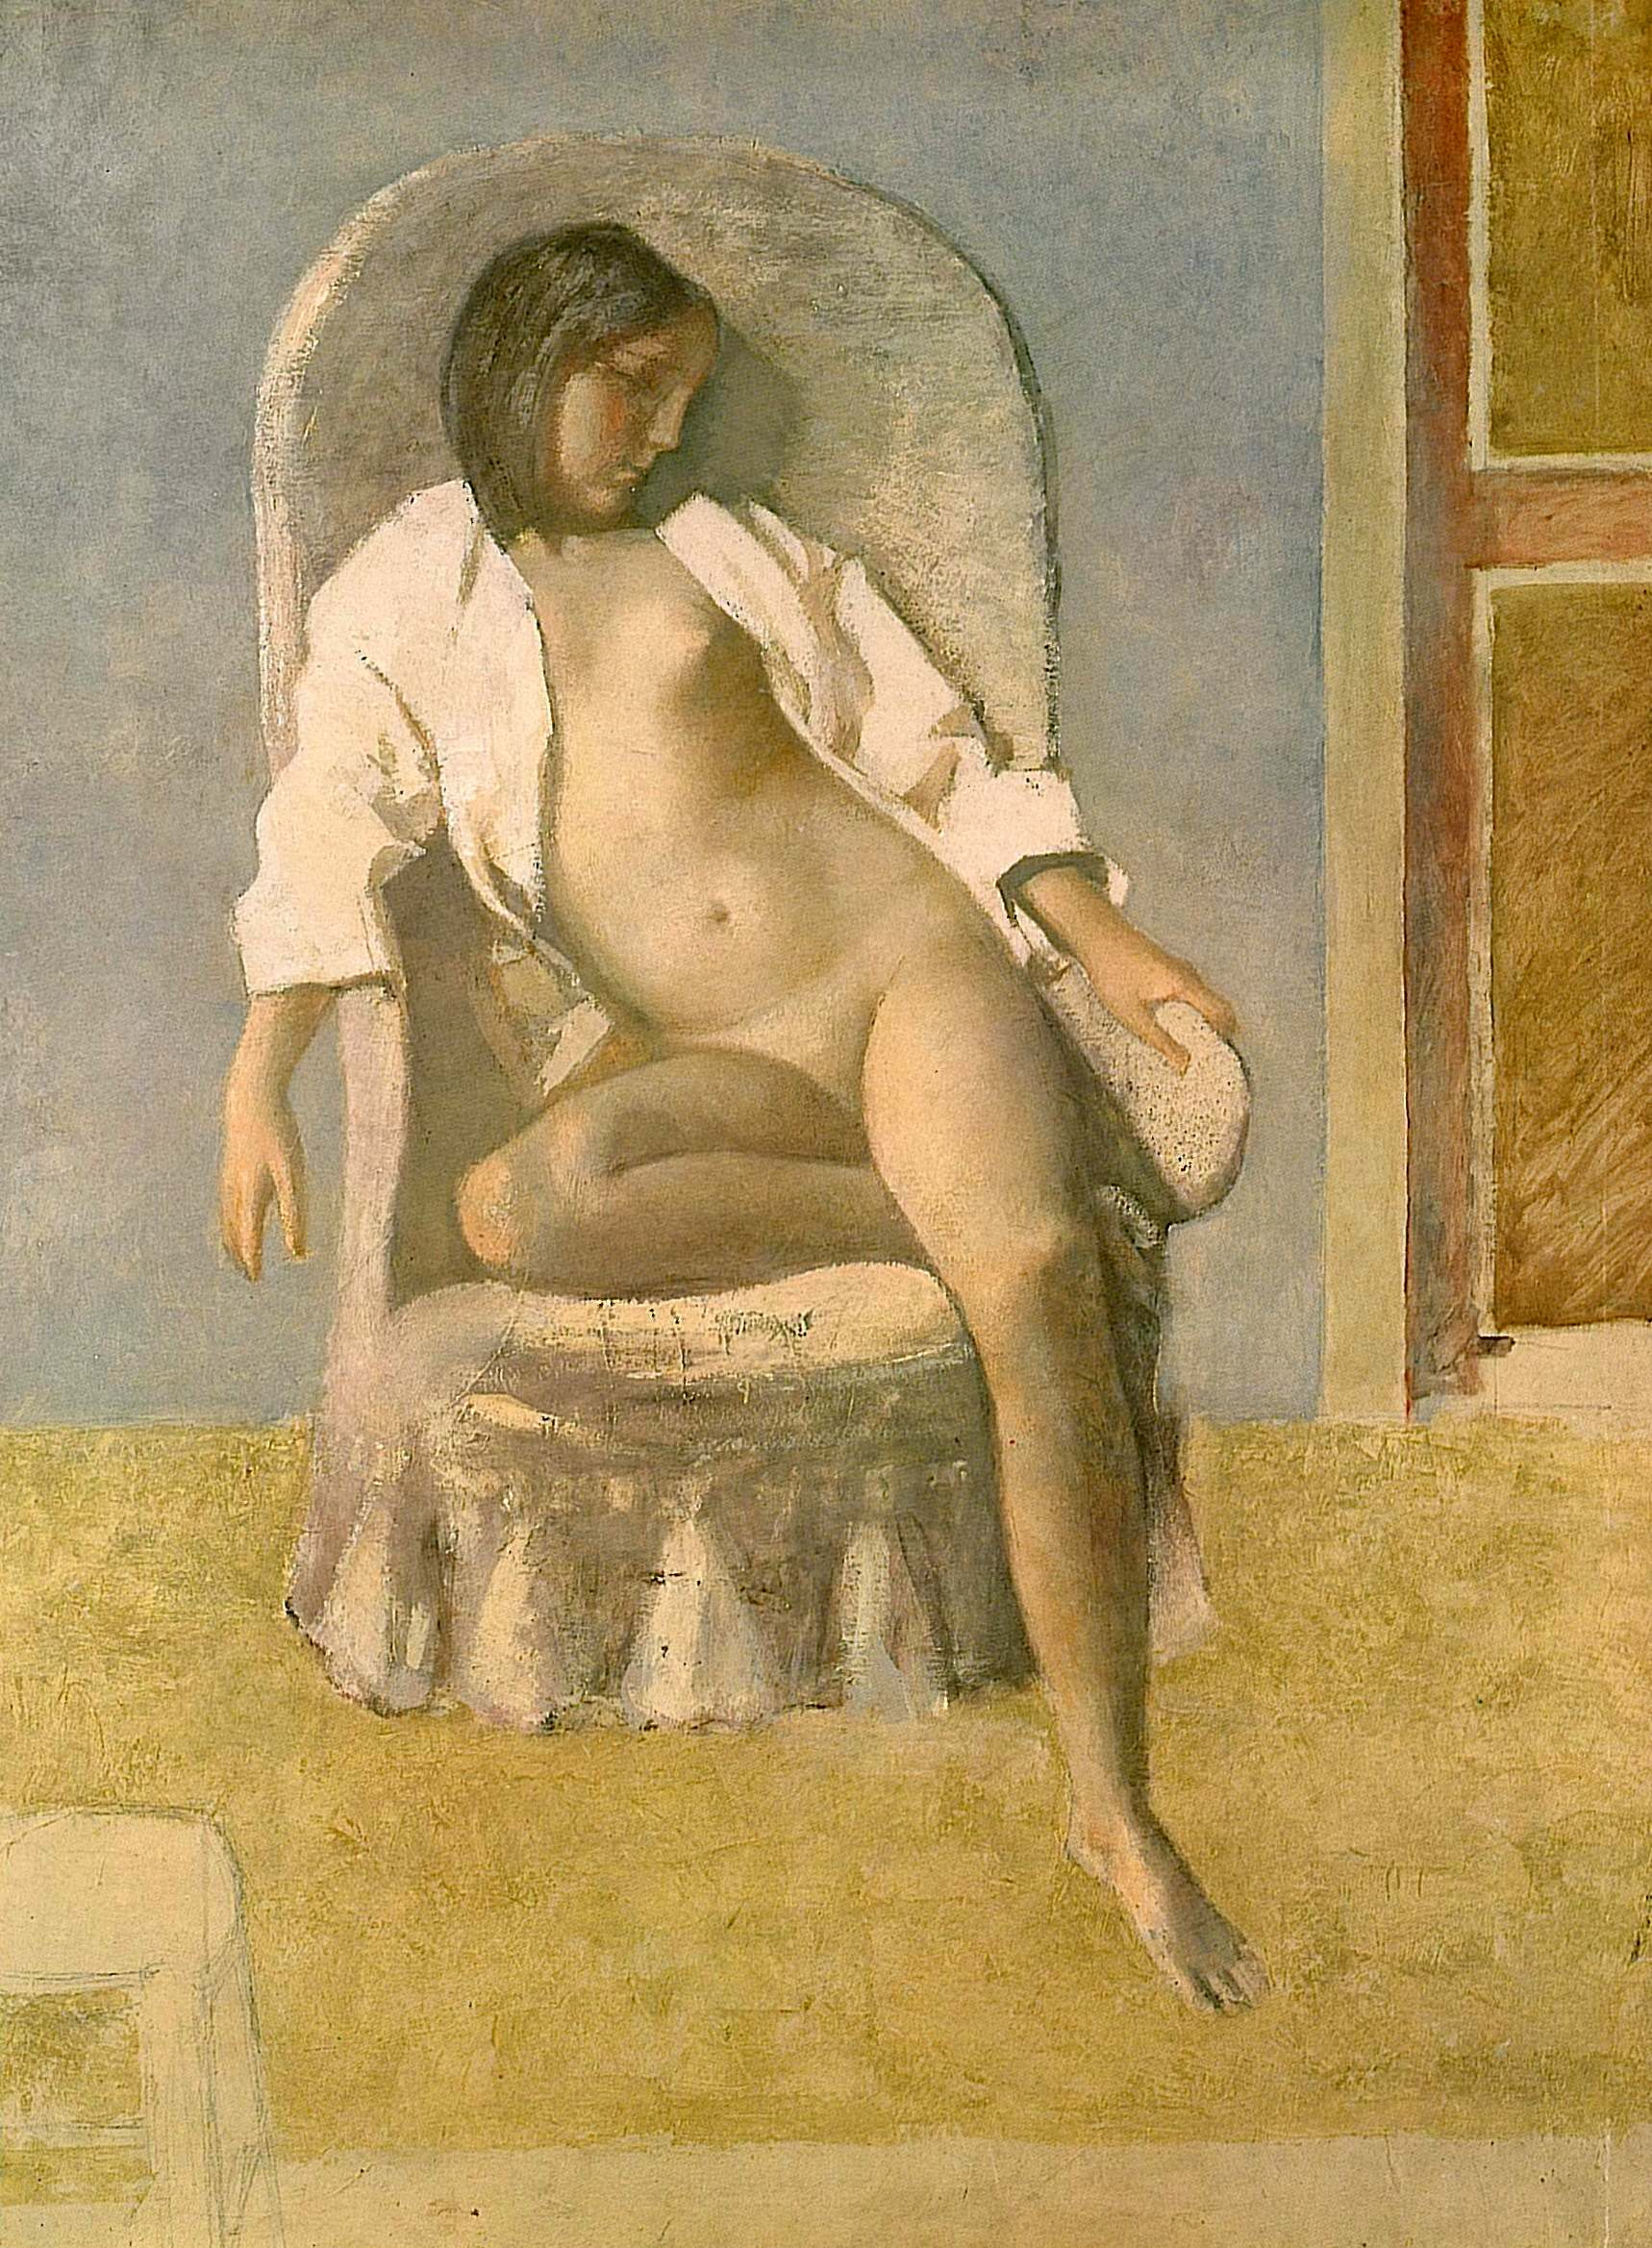 Nude at Rest, Balthus, 1977